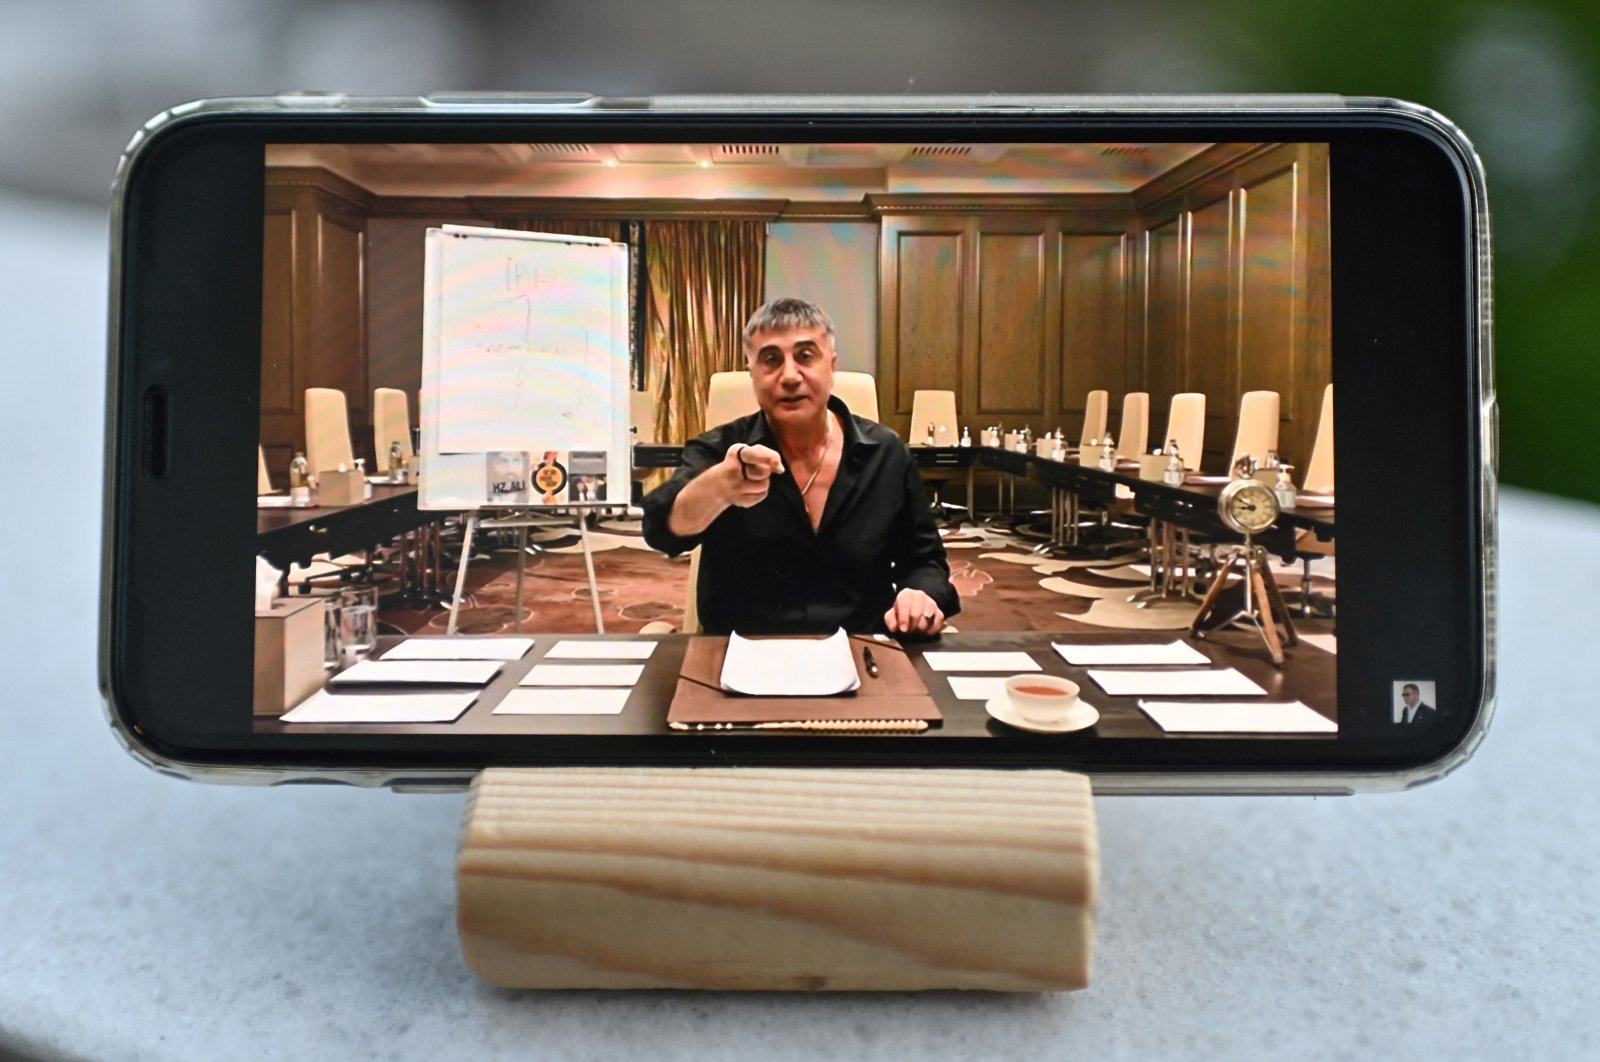 Sedat Peker talks in a video displayed on a mobile phone, in a photograph taken in Istanbul, Turkey, May 26, 2021. (AFP PHOTO)